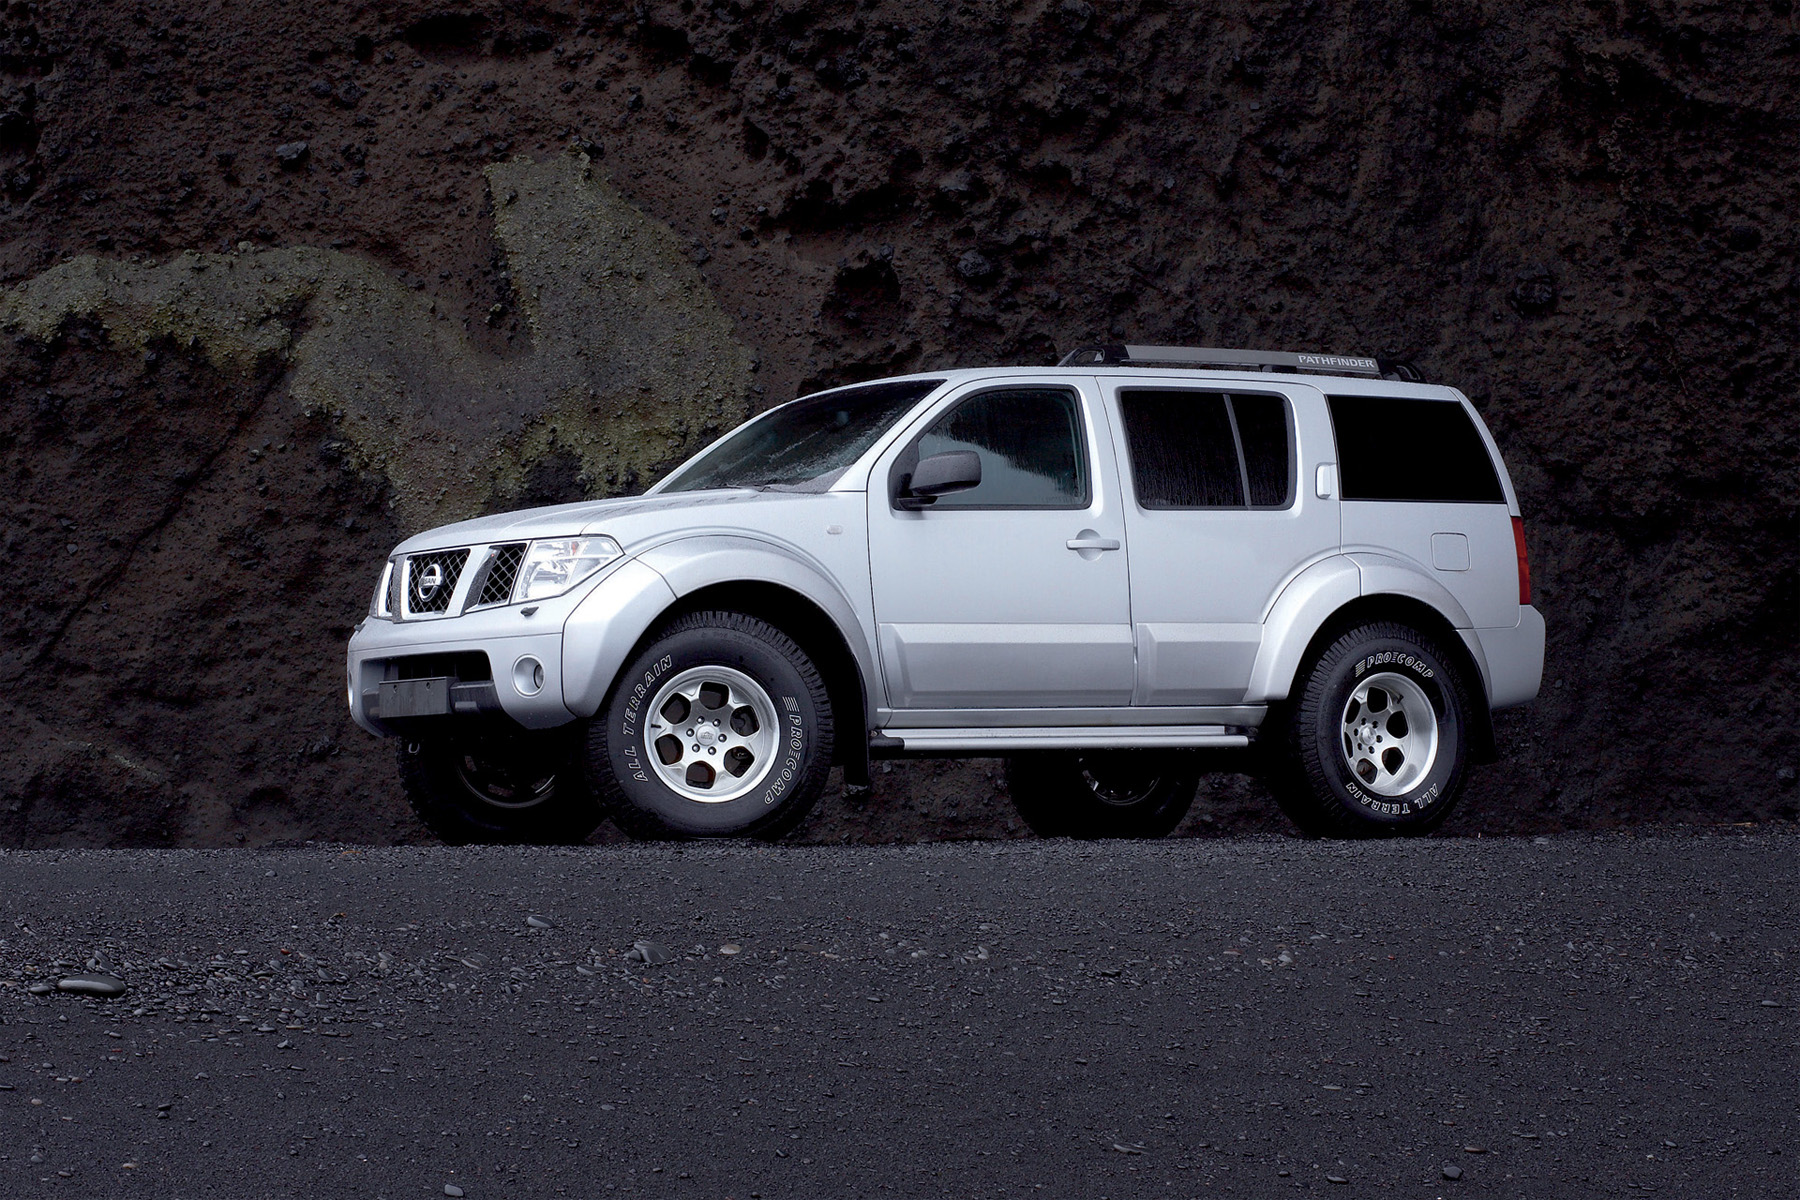 Arctic Trucks Nissan Pathfinder photo 61483